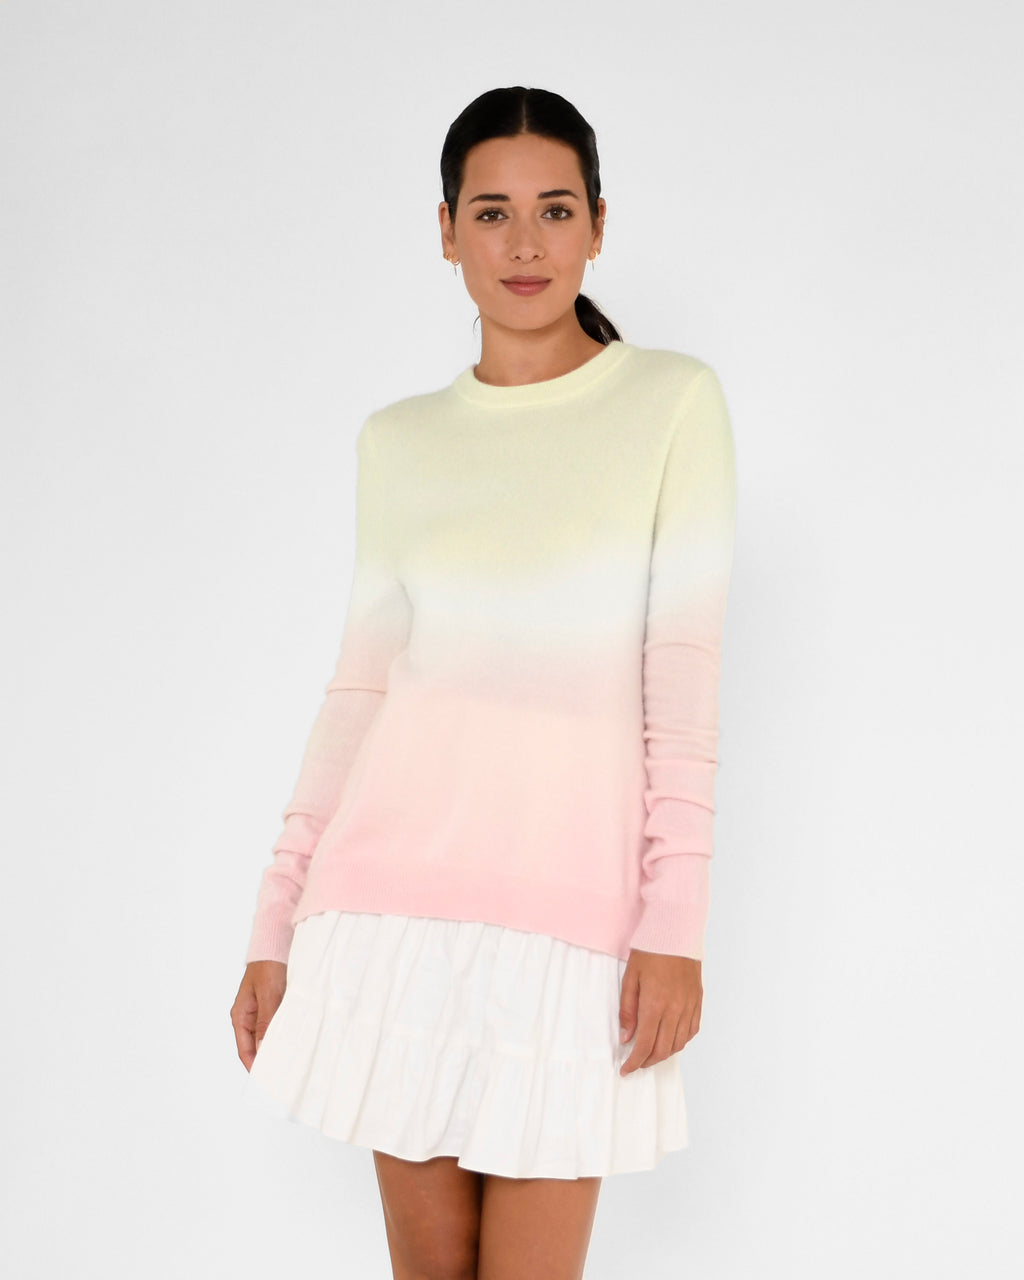 CT19016 - DIP DYE CREW NECK CASHMERE SWEATER - tops - knitwear - Our 100% cashmere crew neck is hand dyed in a pastel pink ombre. Add 1 line break Stylist Tip: Pair with jeans and simple jewelry.